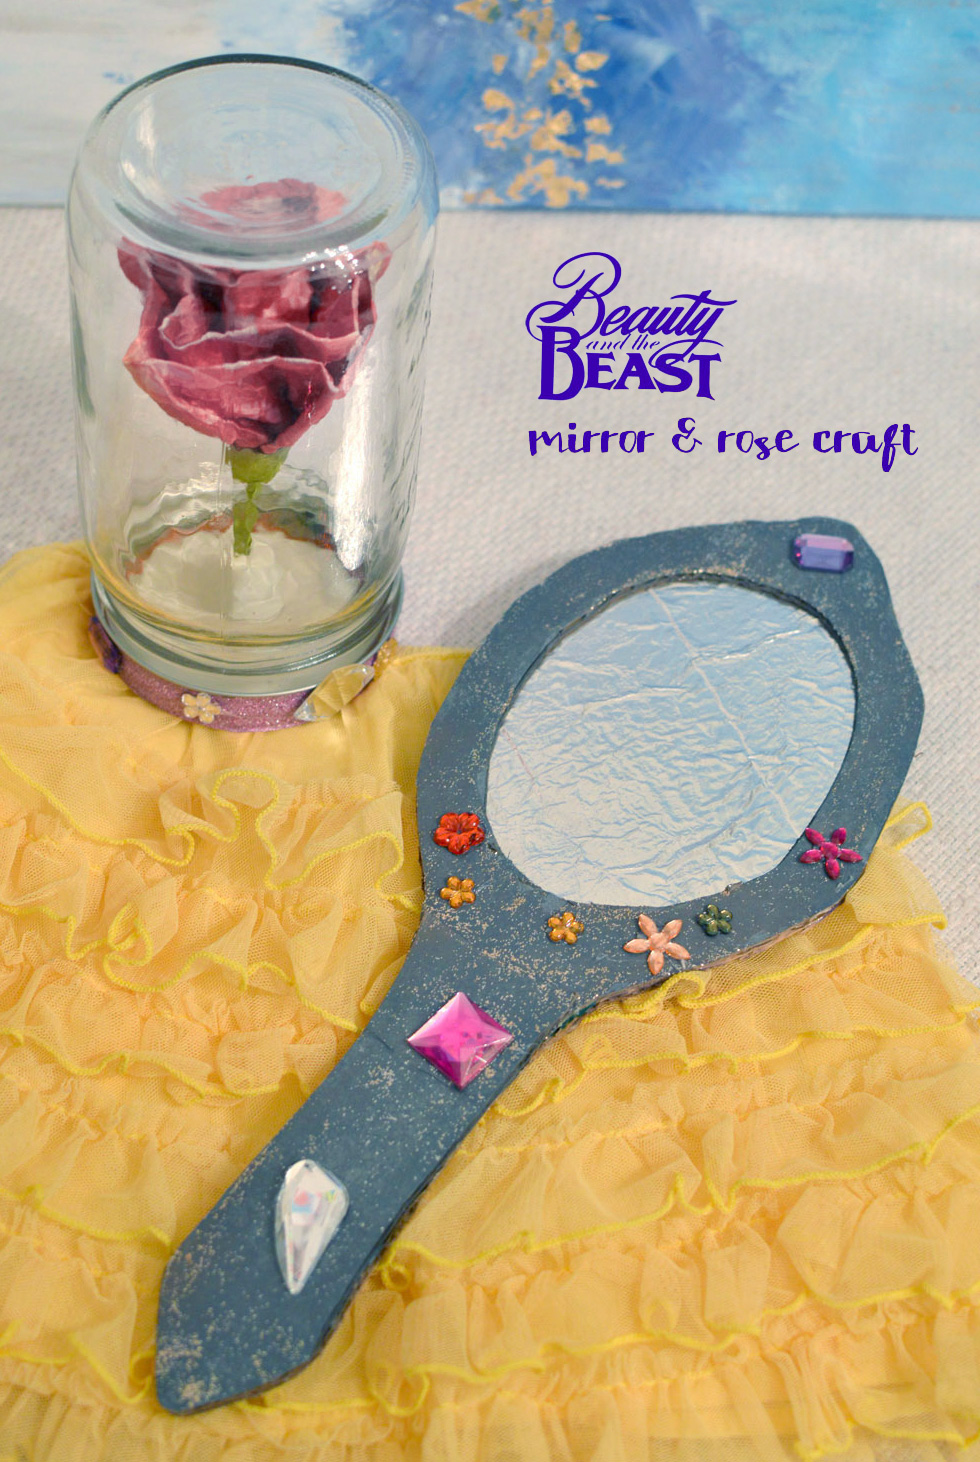 Beauty and the Beast magic mirror and enchanted rose craft - Mommy Scene